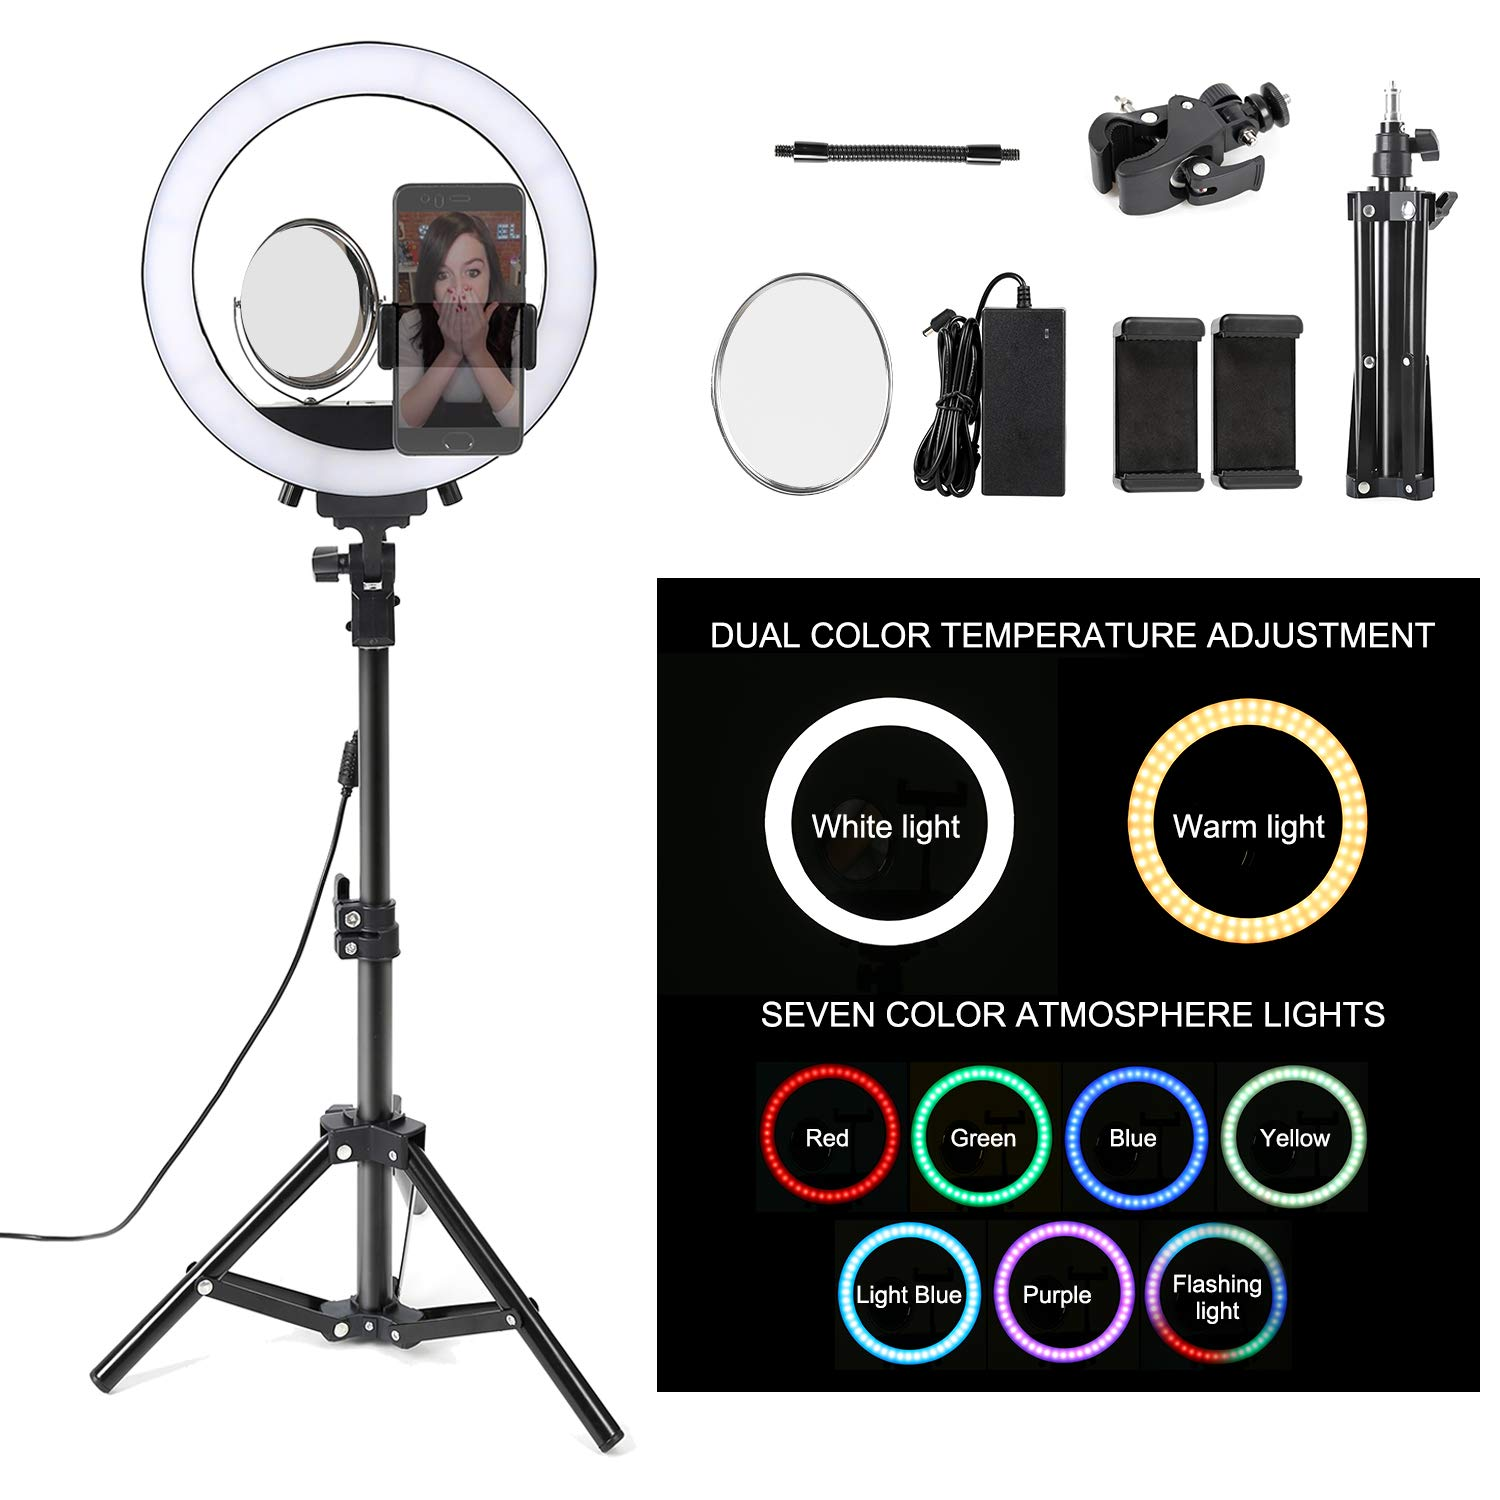 8 Dimmable LED Selfie Ring Light with Stand,Makeup Mirror and Phone Holder,Camera Photo Video Lighting Kit,24W 5500K Video Tabletop Lights Lamps